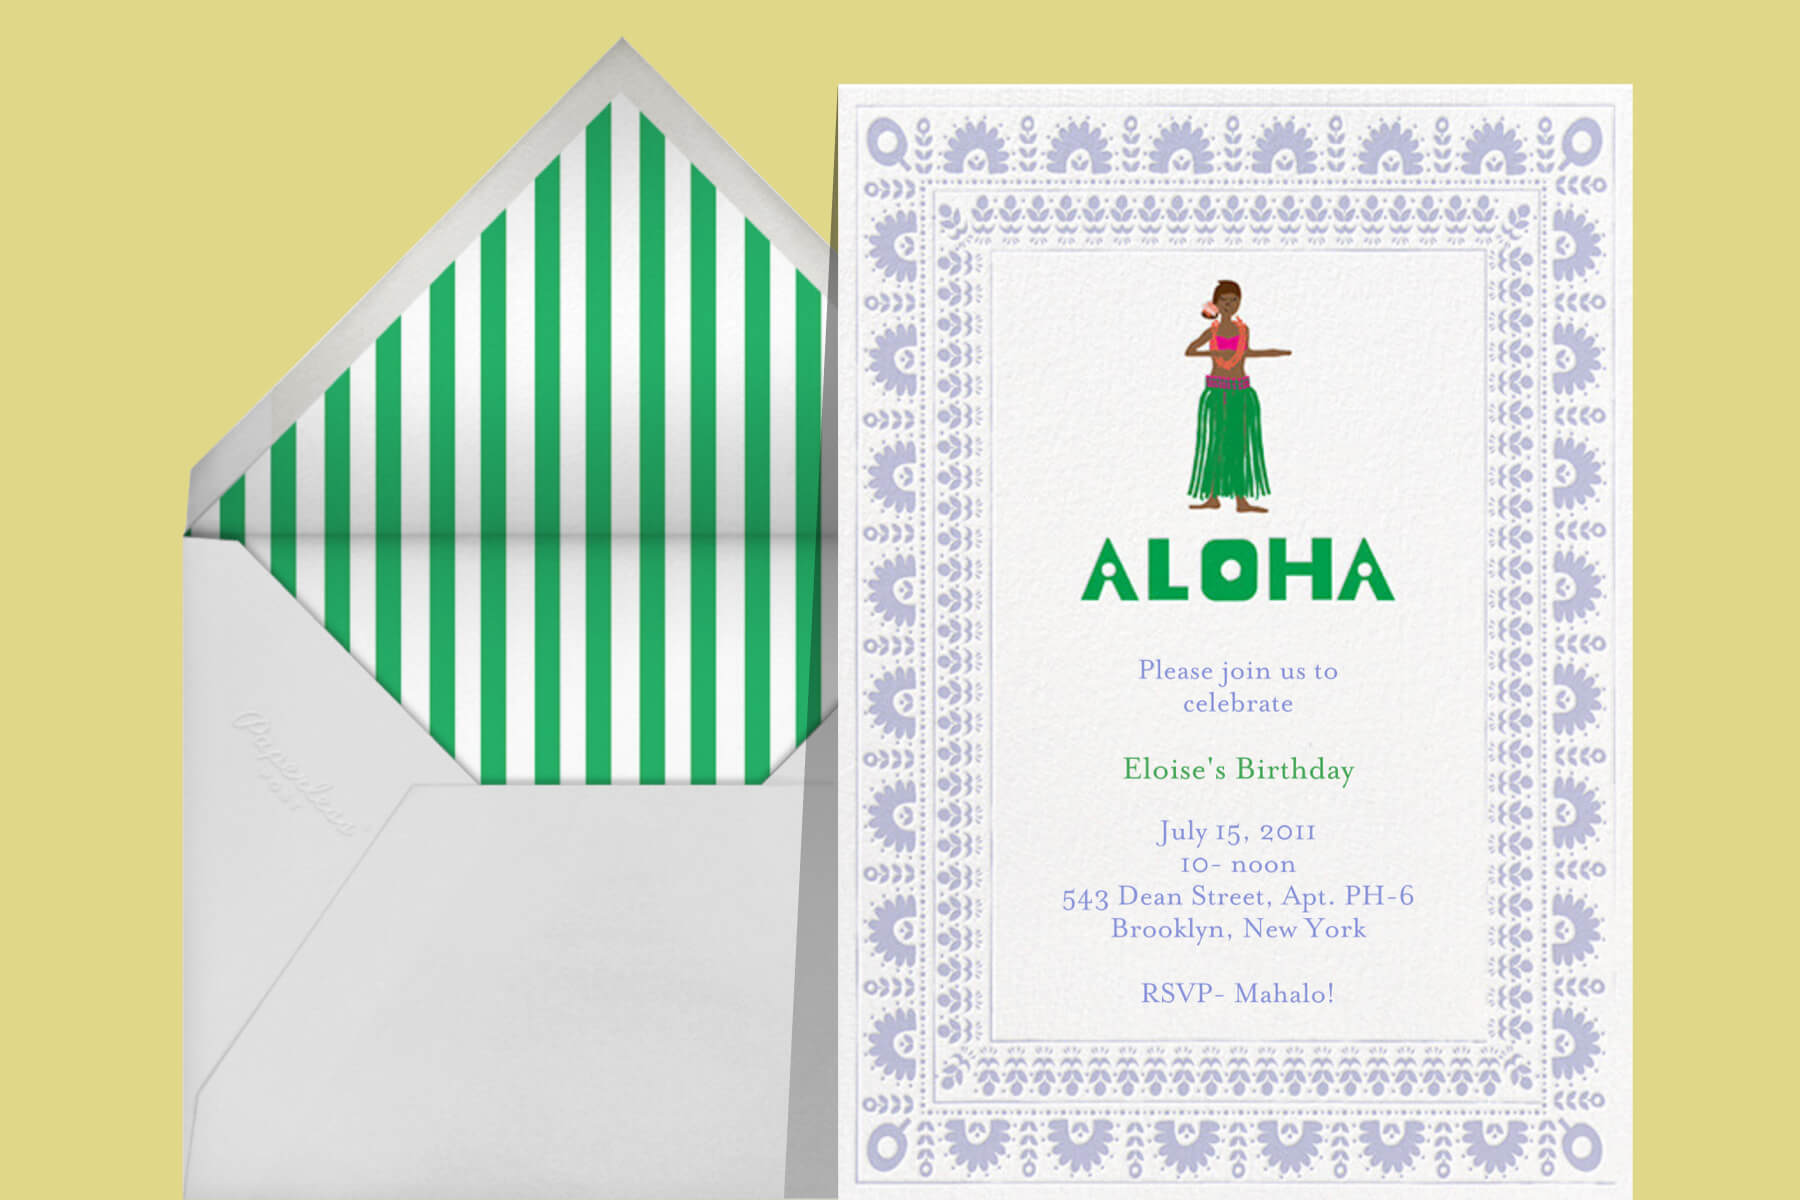 Birthday party invitation with an illustration of a woman in a grass skirt dancing the hula.